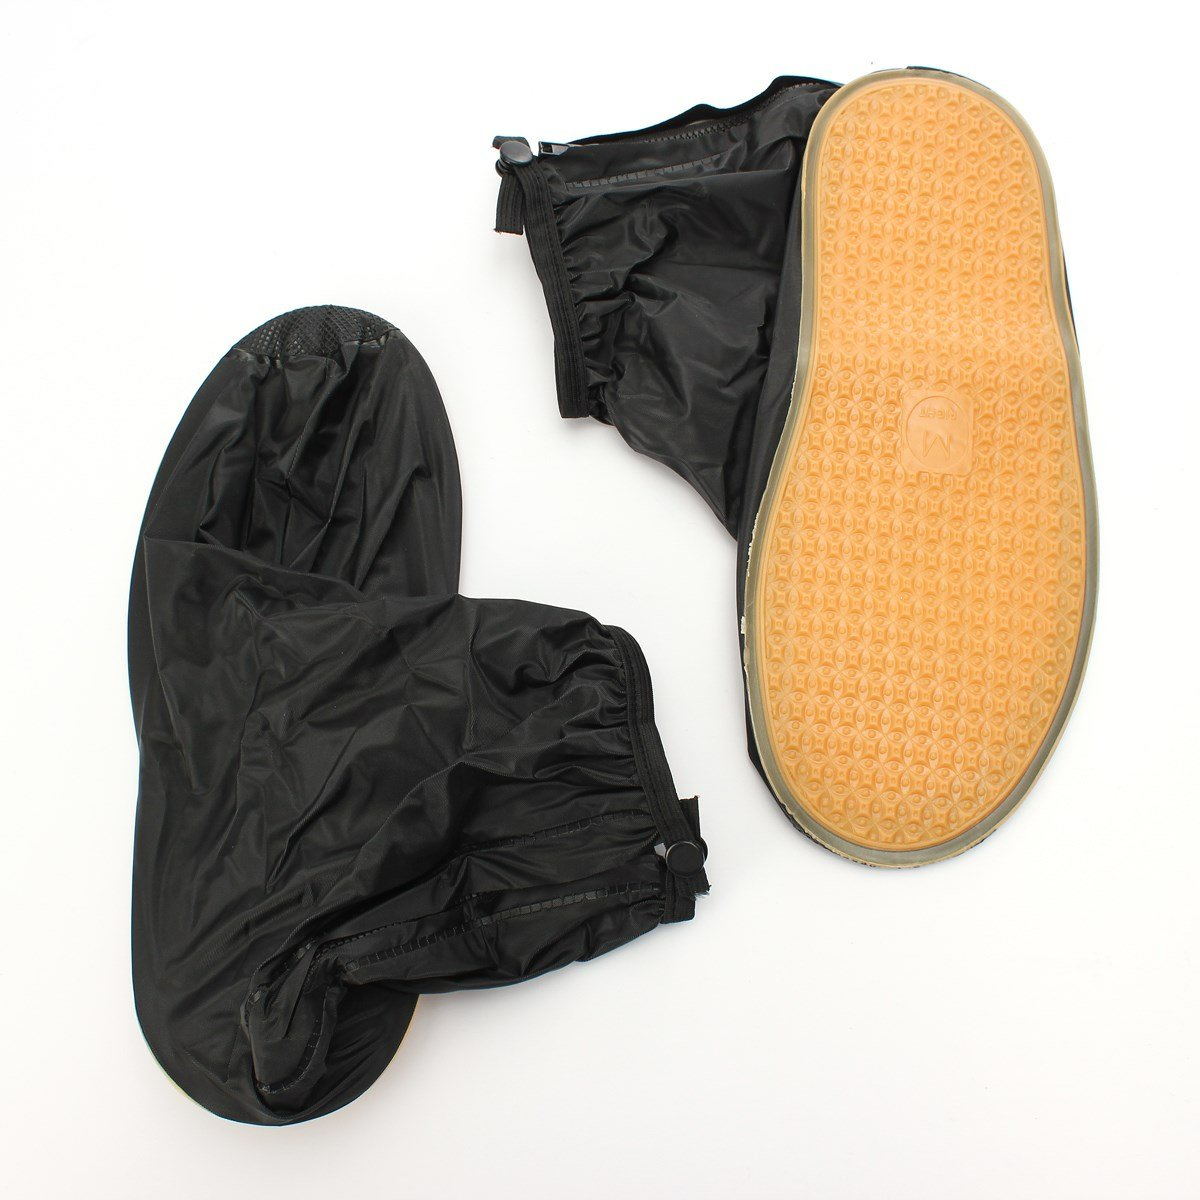 1 Pair Reusabl Rubber Waterproof Rain Shoes Cover